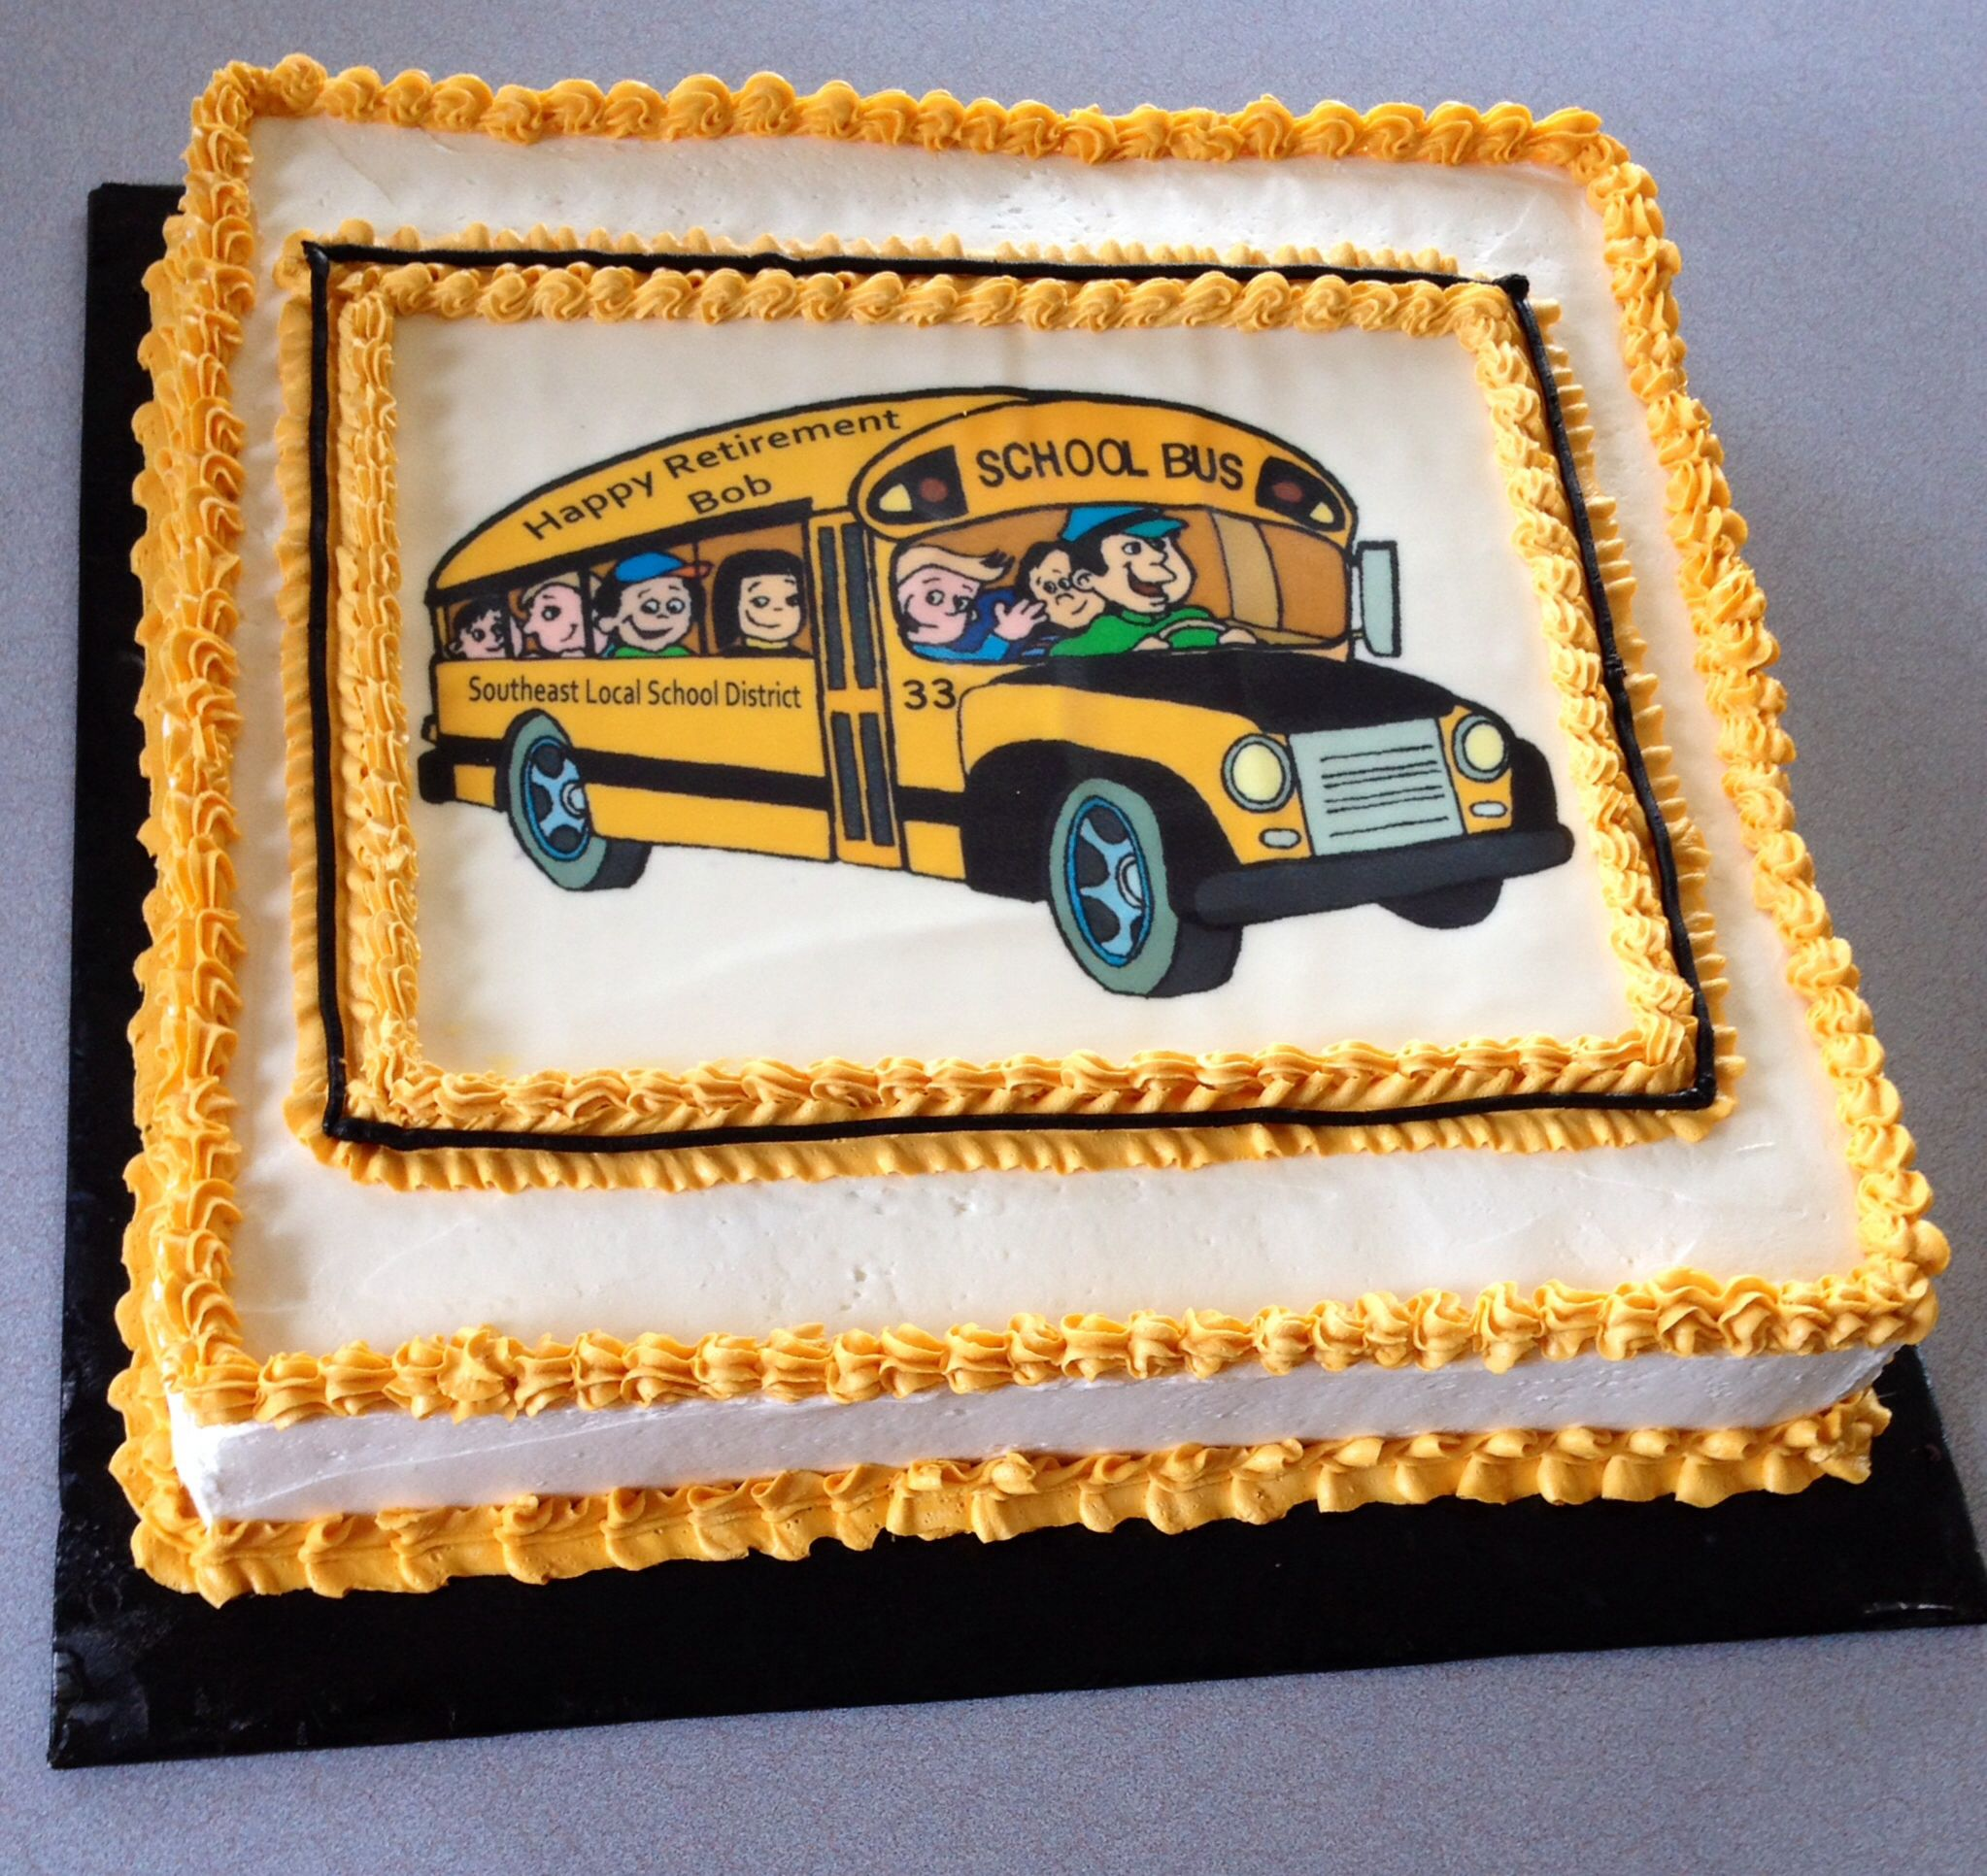 Surprising School Bus Driver Retirement With Images School Bus Cake Personalised Birthday Cards Cominlily Jamesorg